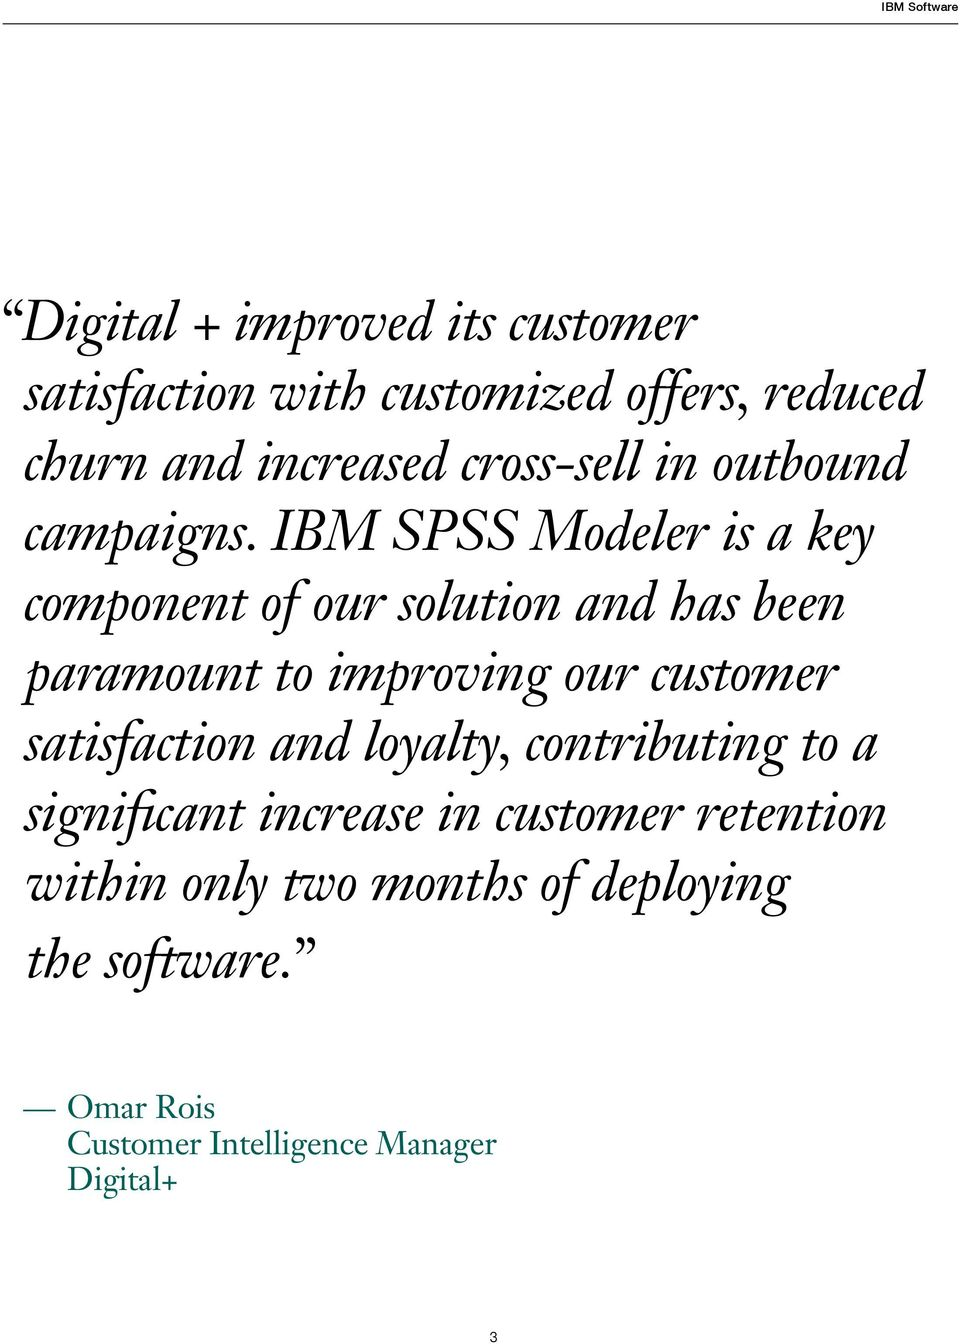 IBM SPSS Modeler is a key component of our solution and has been paramount to improving our customer